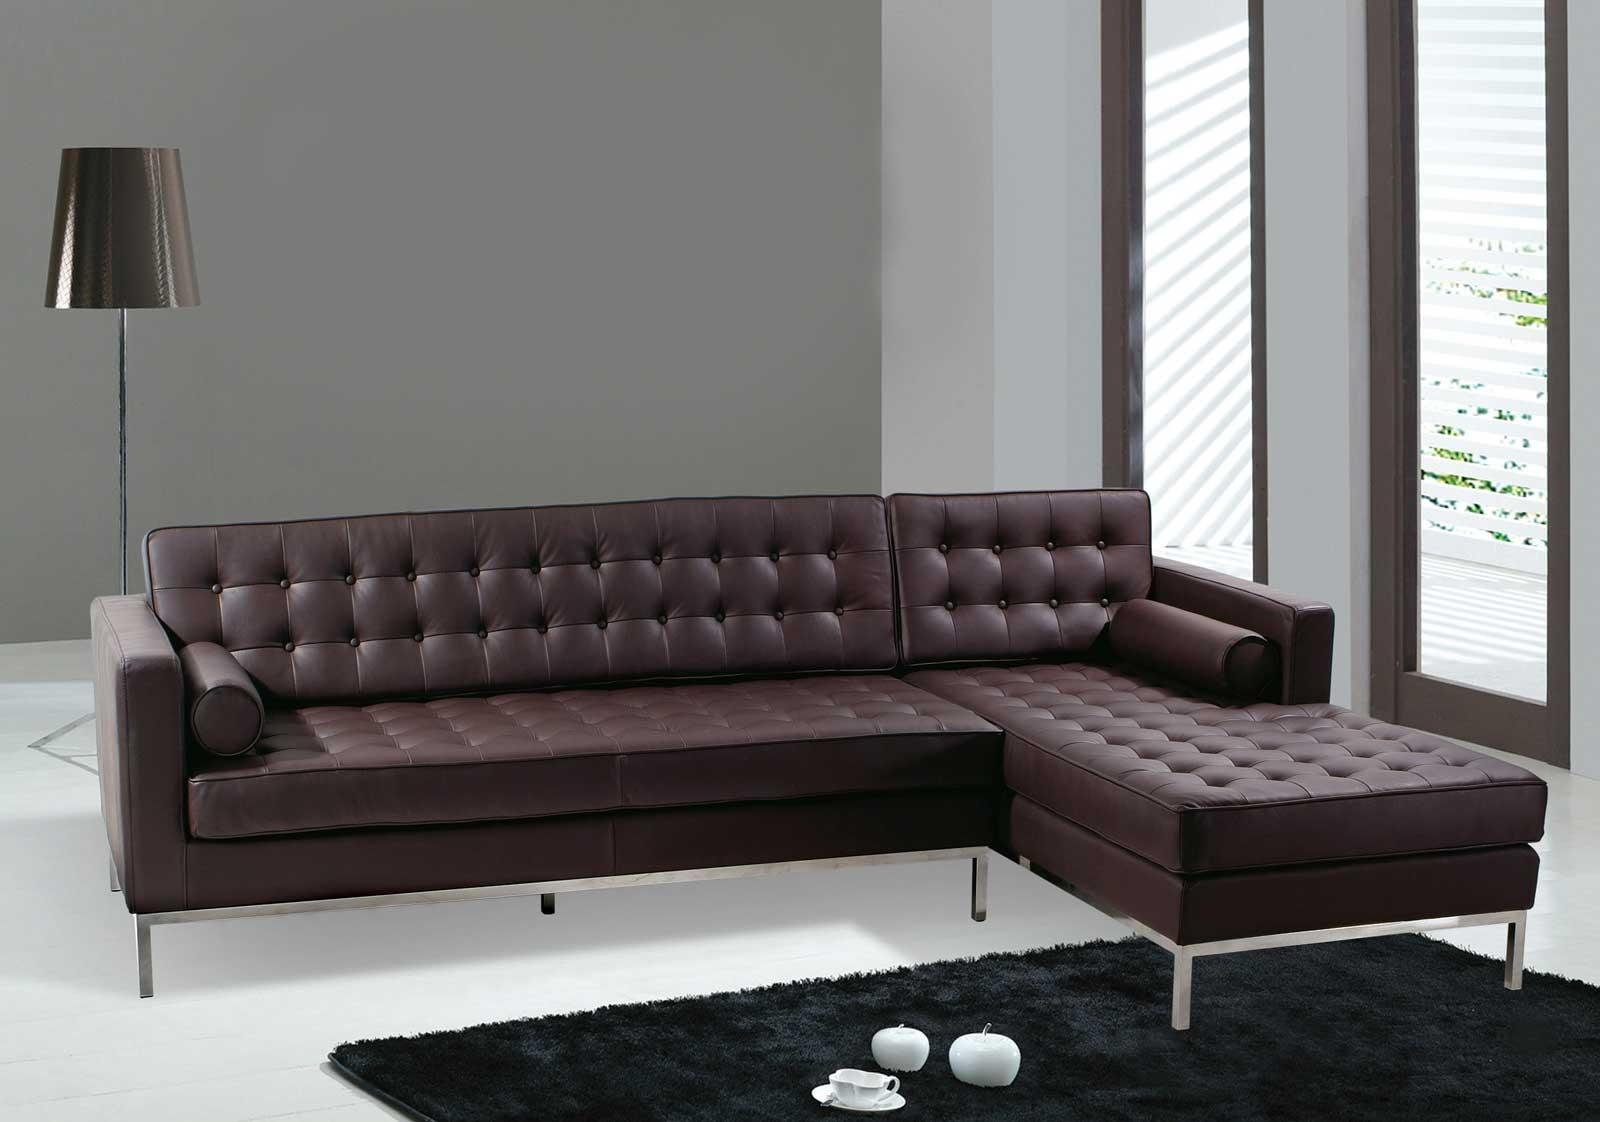 Modern Contemporary Leather Sofa Living Room | All Contemporary Design Pertaining To Contemporary Brown Leather Sofas (View 2 of 20)